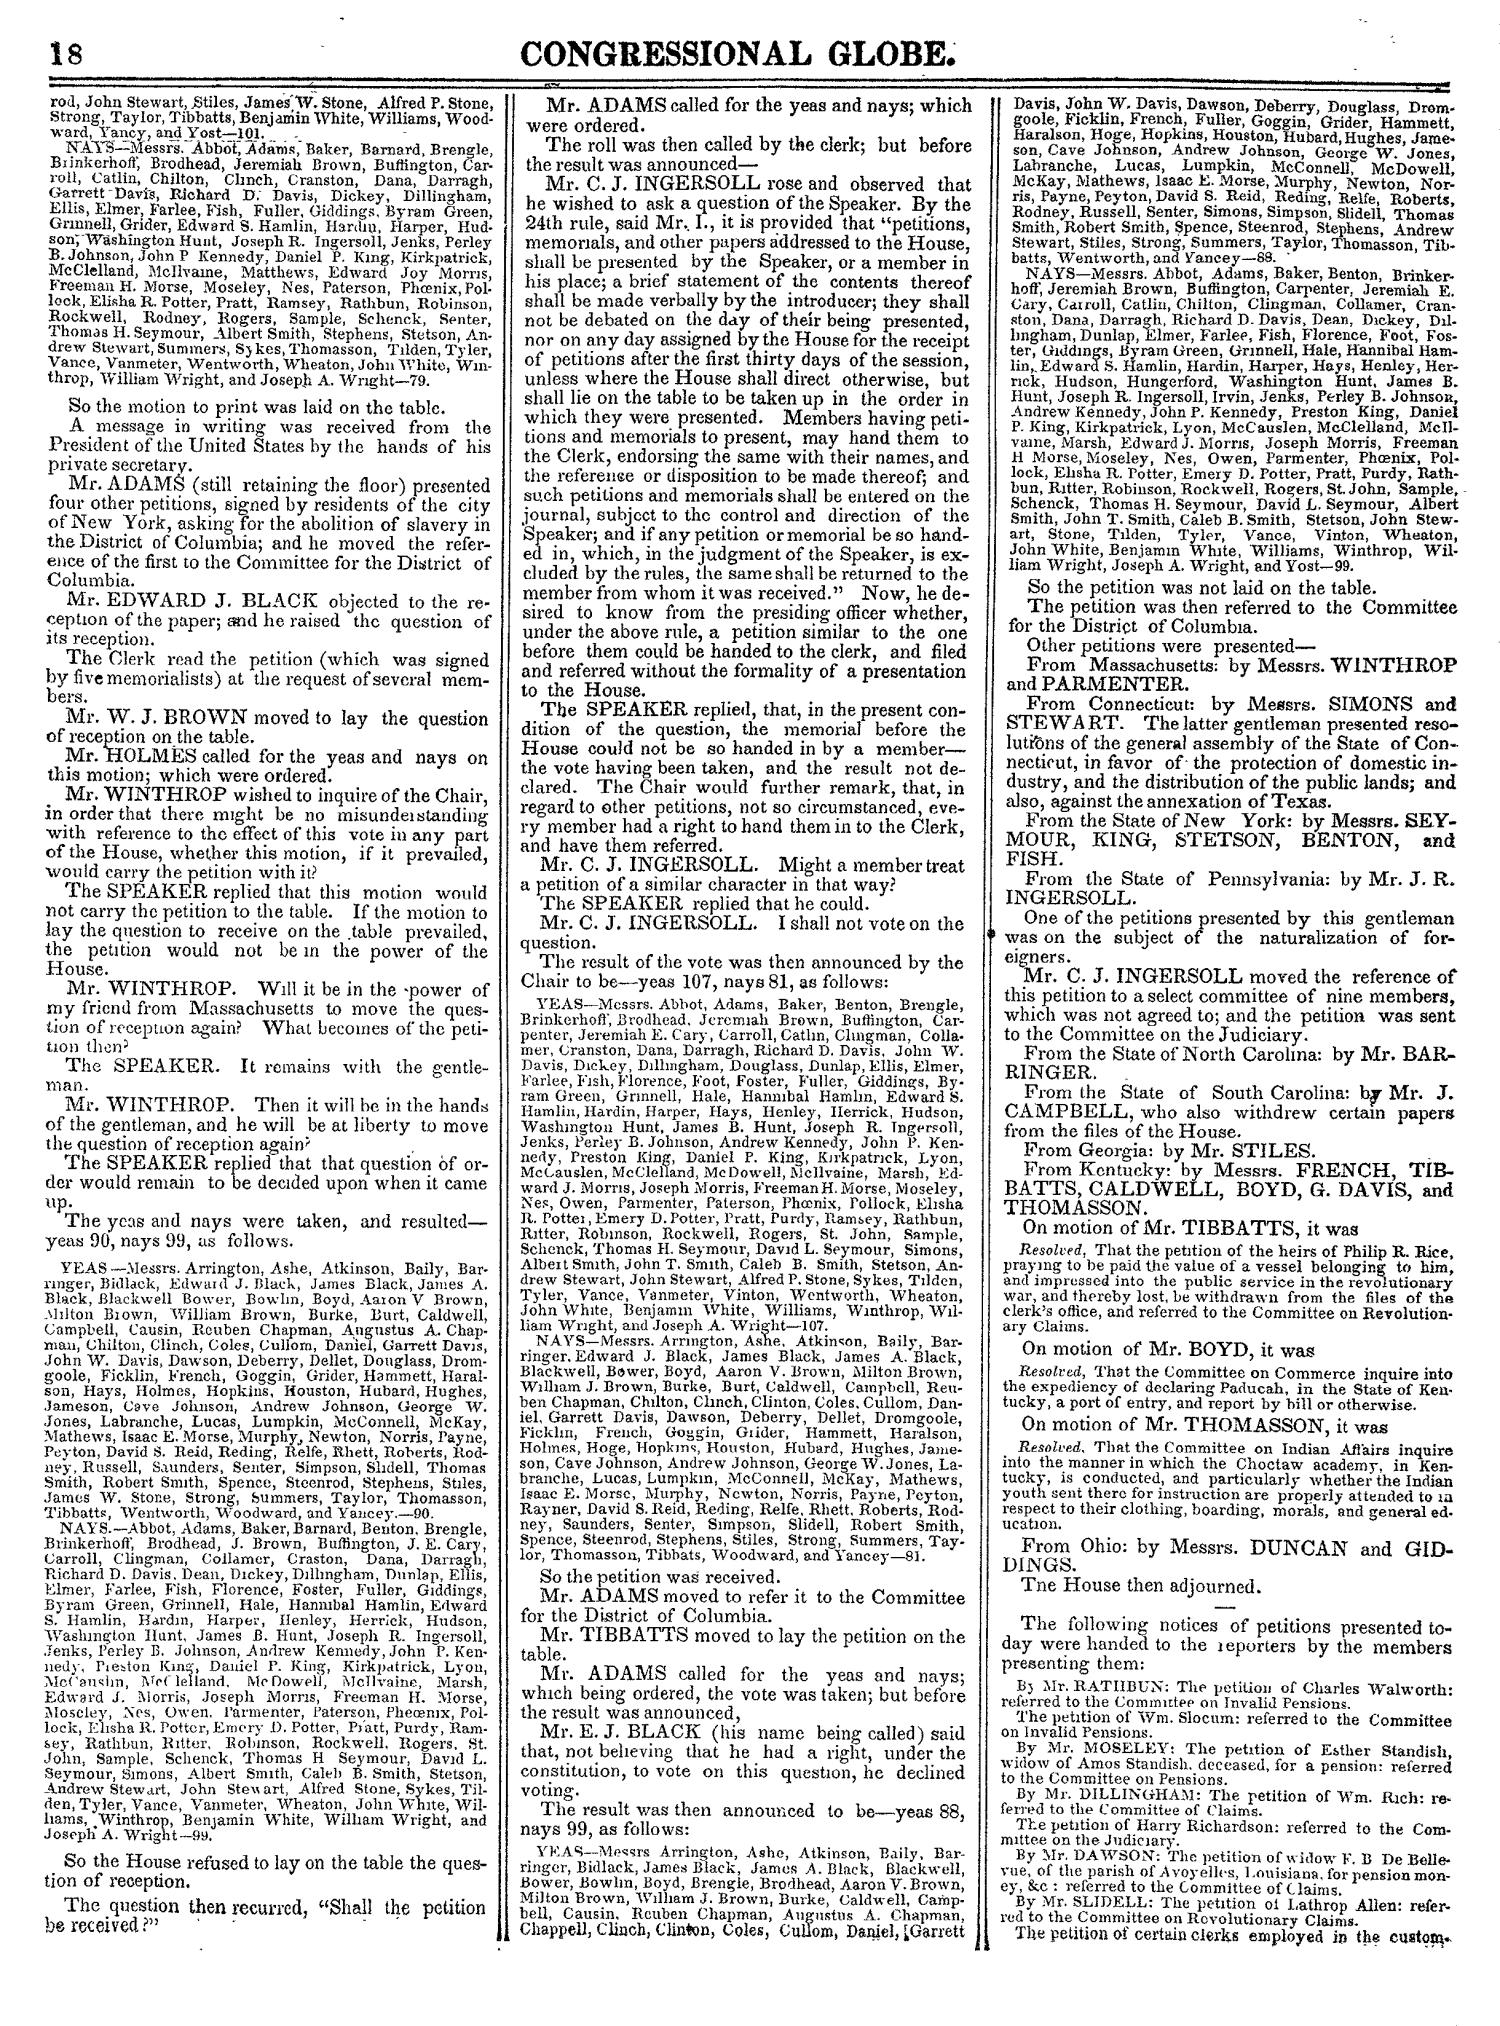 The Congressional Globe, Volume 14: Twenty-Eighth Congress, Second Session                                                                                                      18